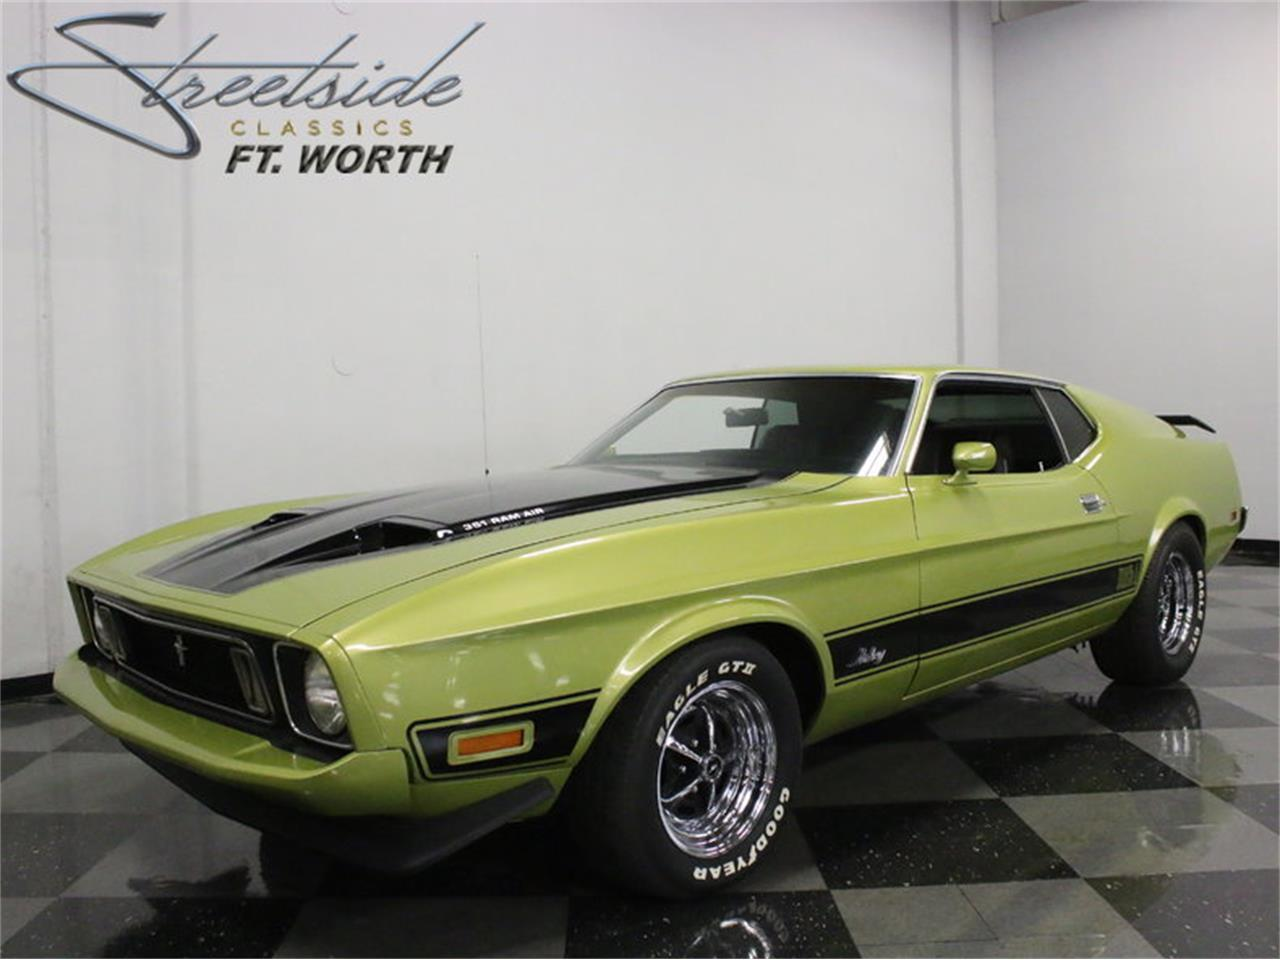 Large picture of 73 mustang mach 1 l2e2